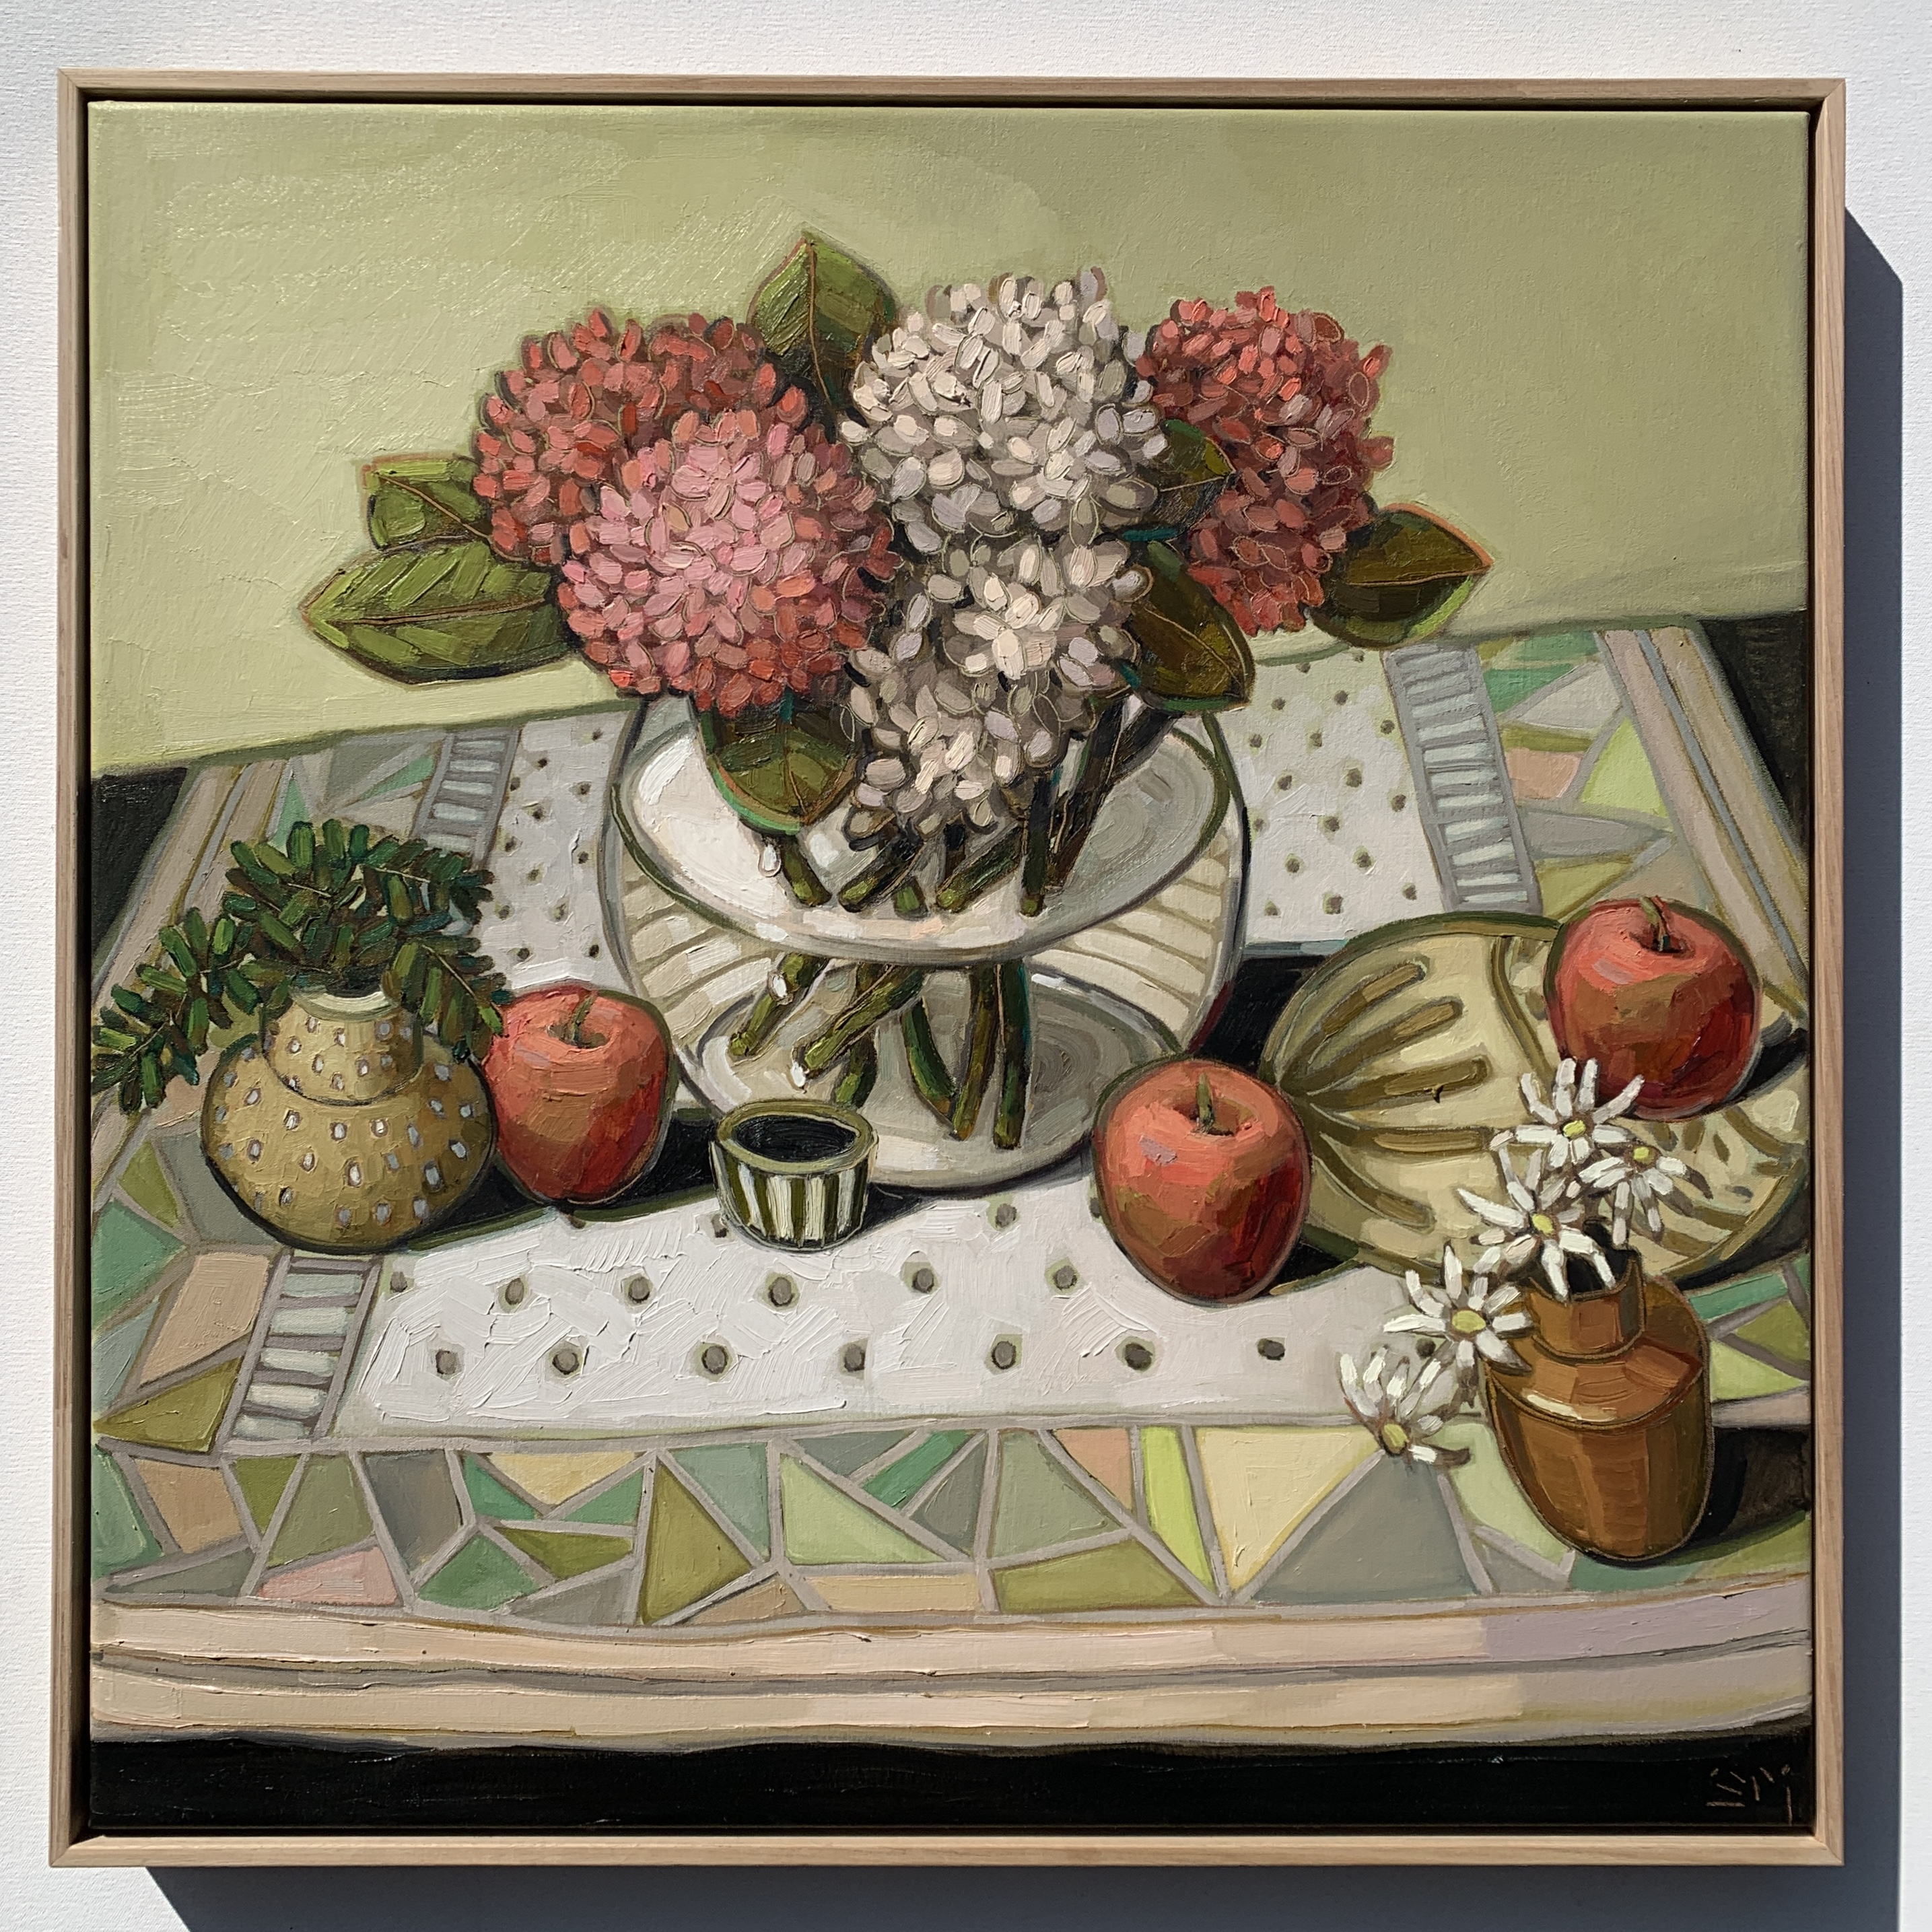 sam michelle 'hydrangeas, apples & flann